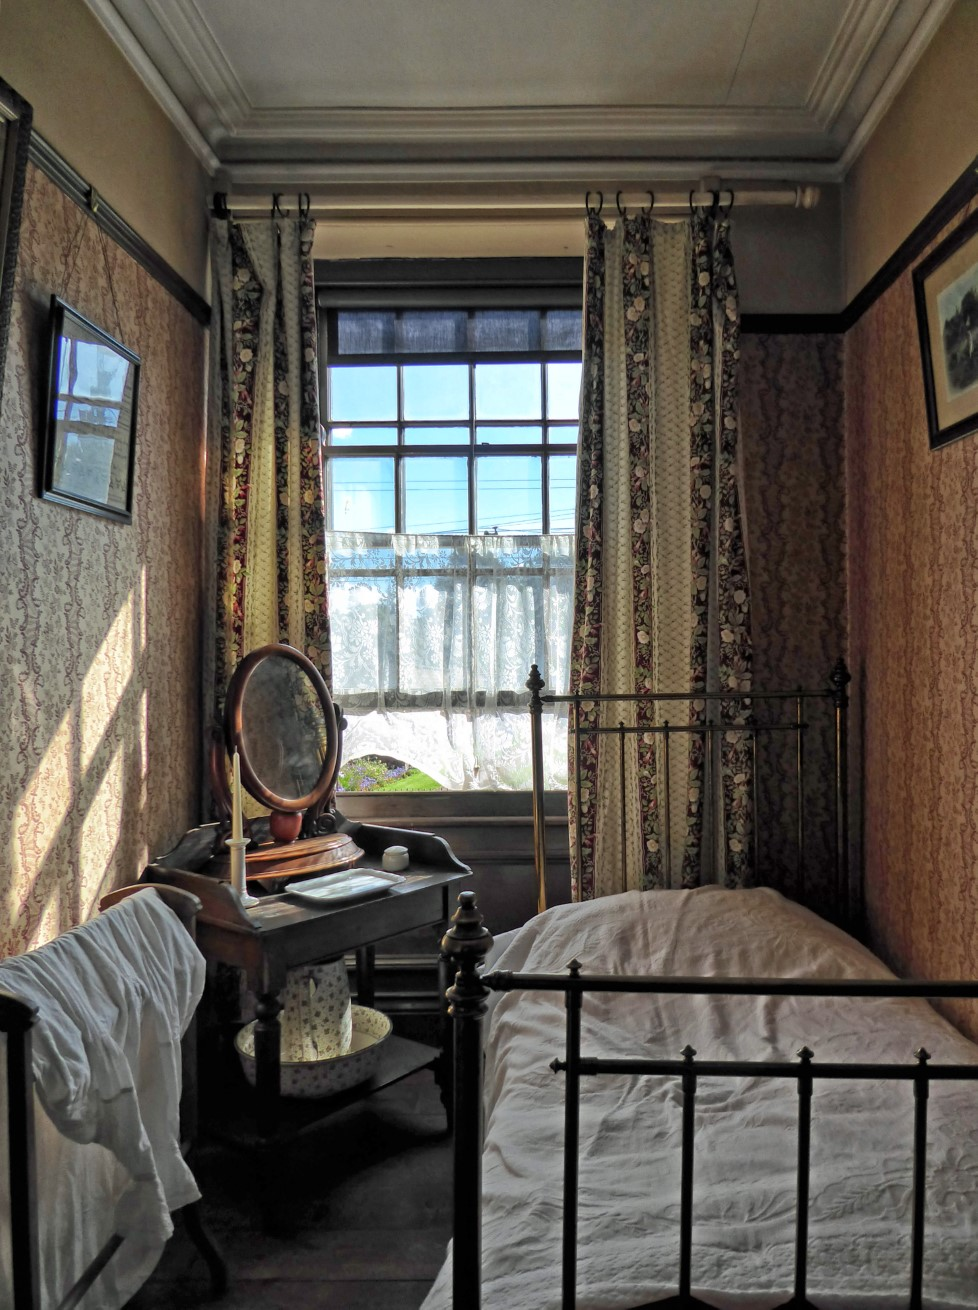 Small old-fashioned bedroom